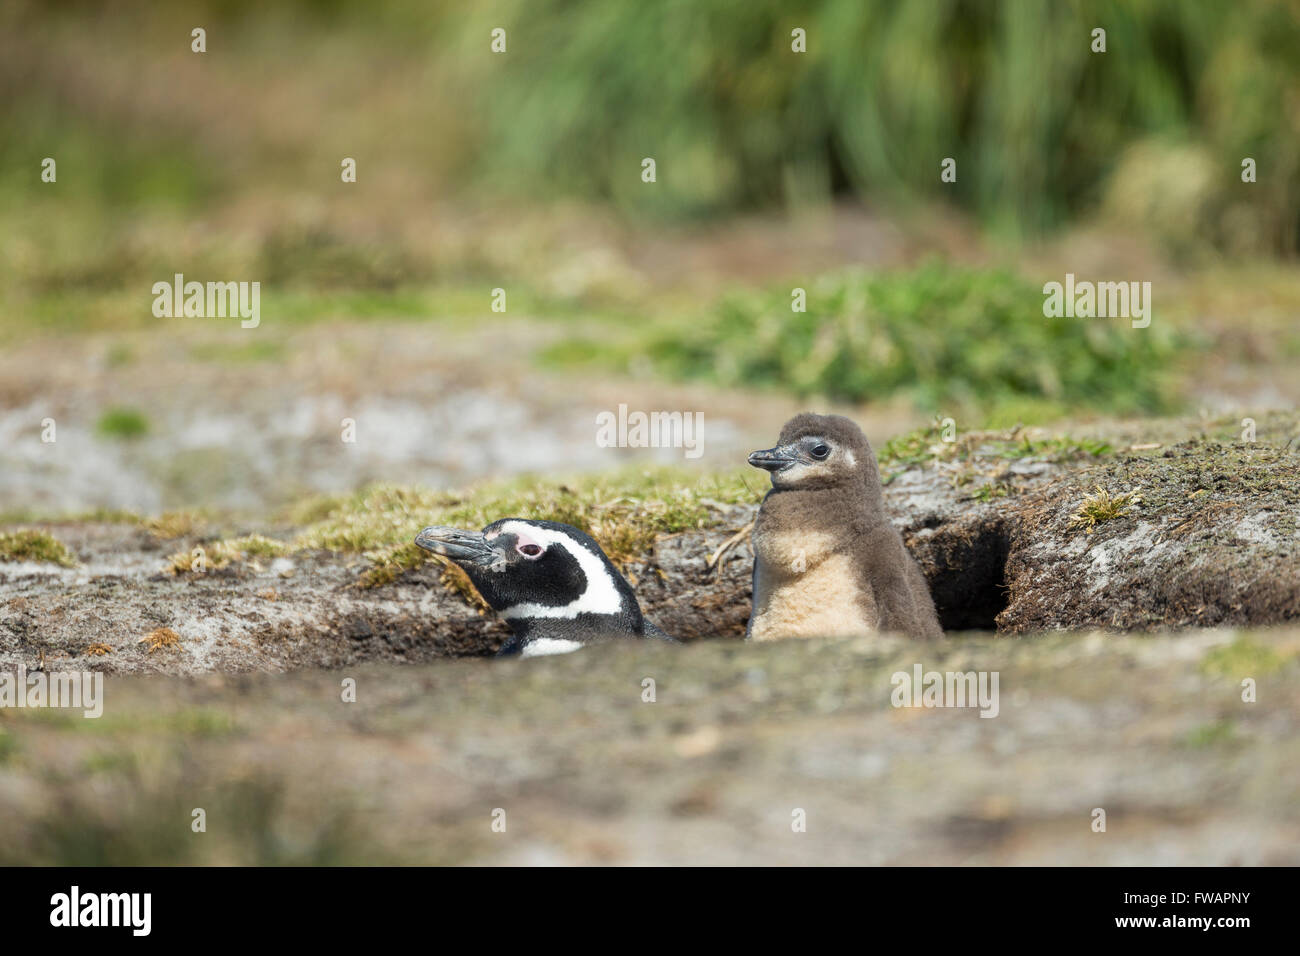 Magellanic penguin Spheniscus magellanicus, adult and chick, by nesting burrow, Sea Lion Island, Falkland Islands - Stock Image